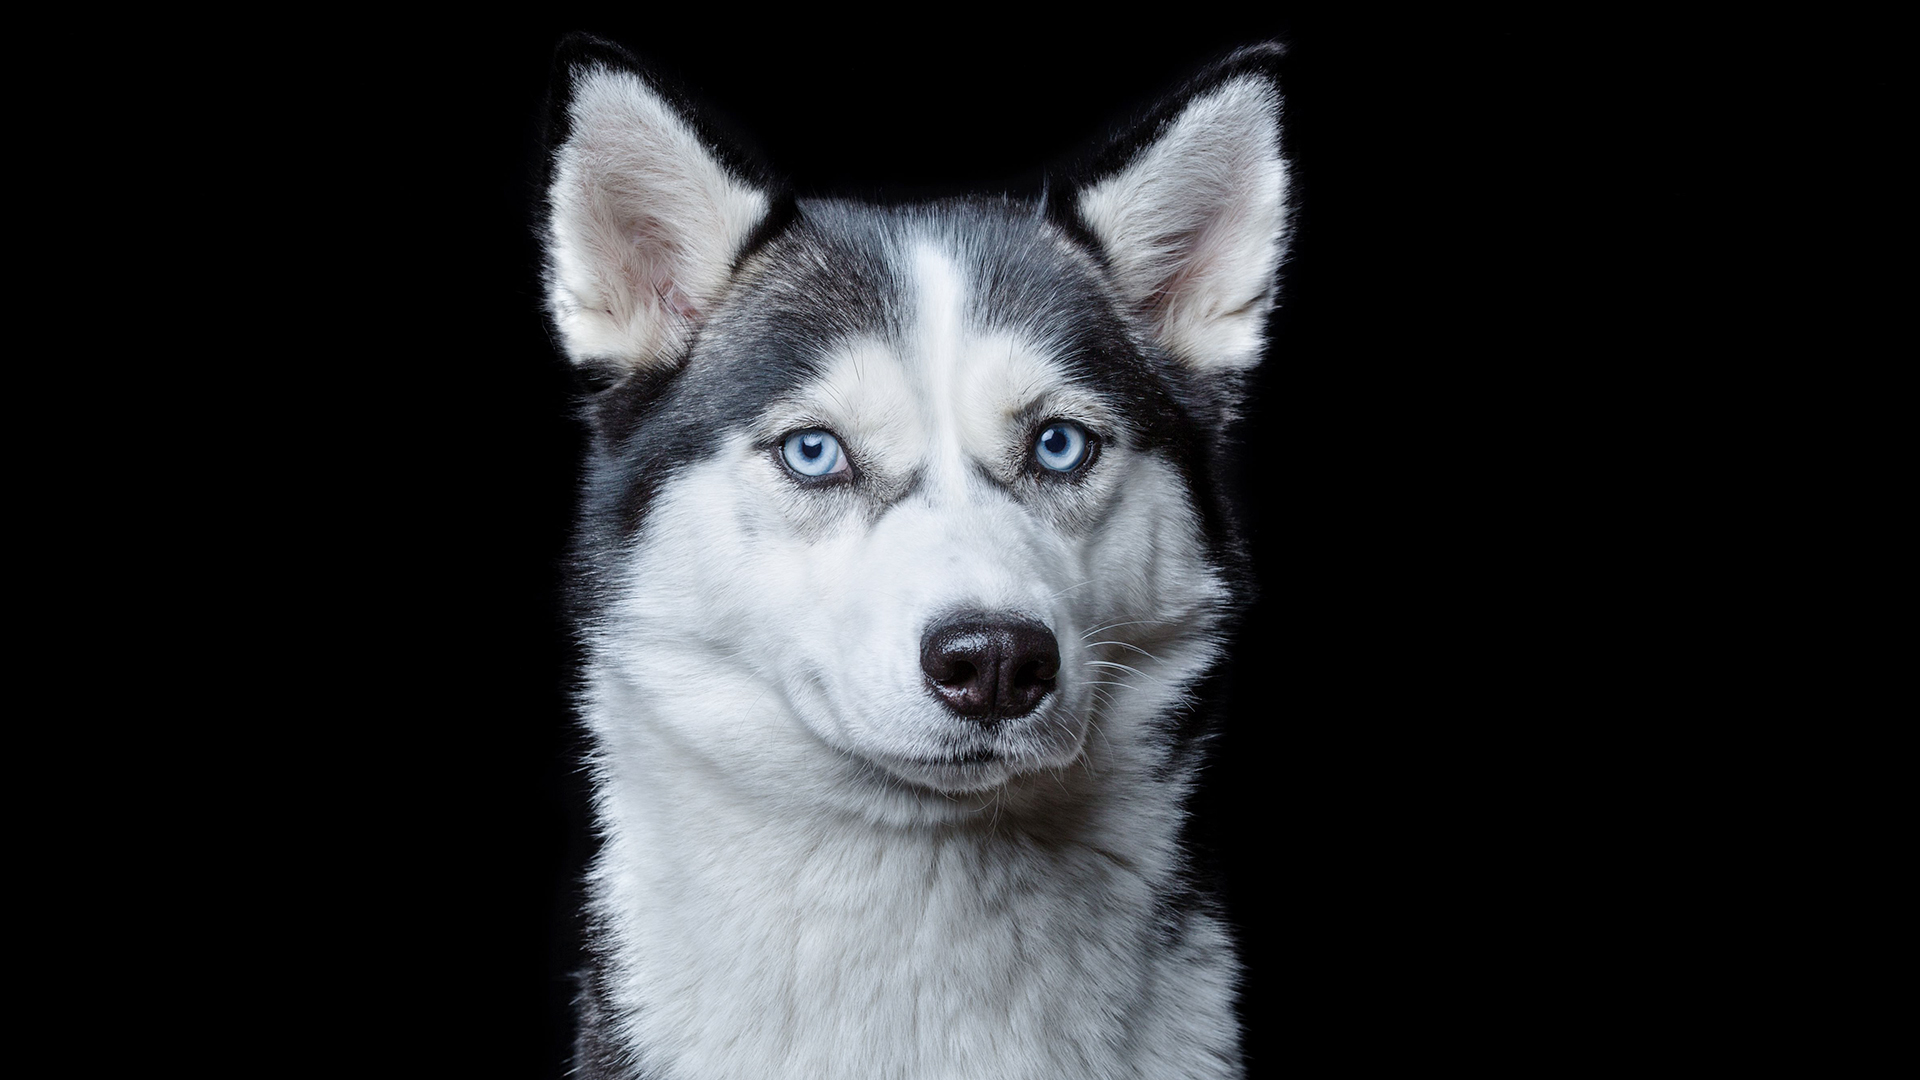 Shaved husky photo sparks outrage: Should double-coated dogs be shaved?